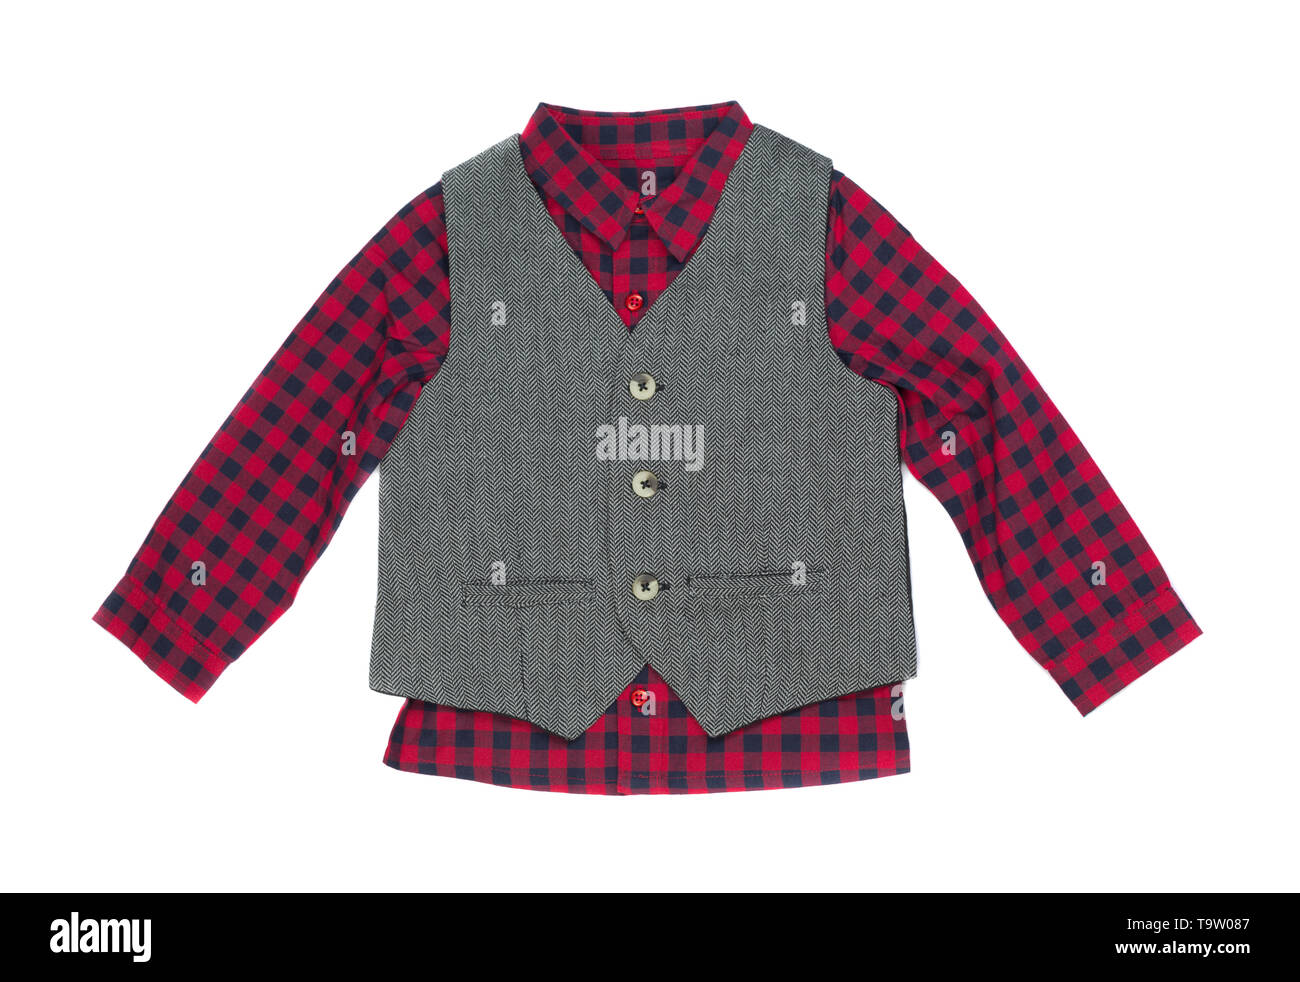 Plaid shirt with vest, isolate on a white background - Stock Image